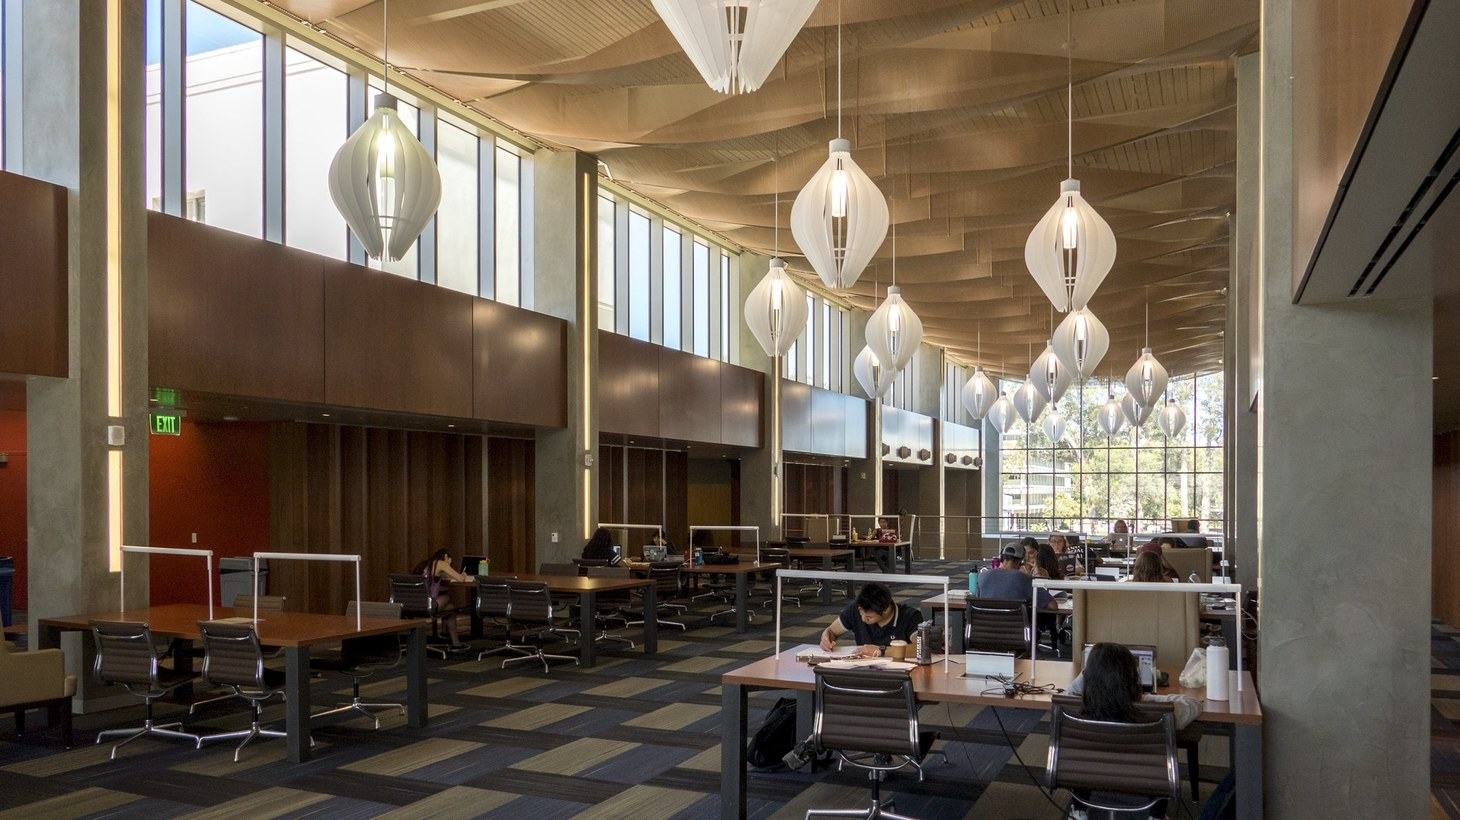 Inside UCSB Library.